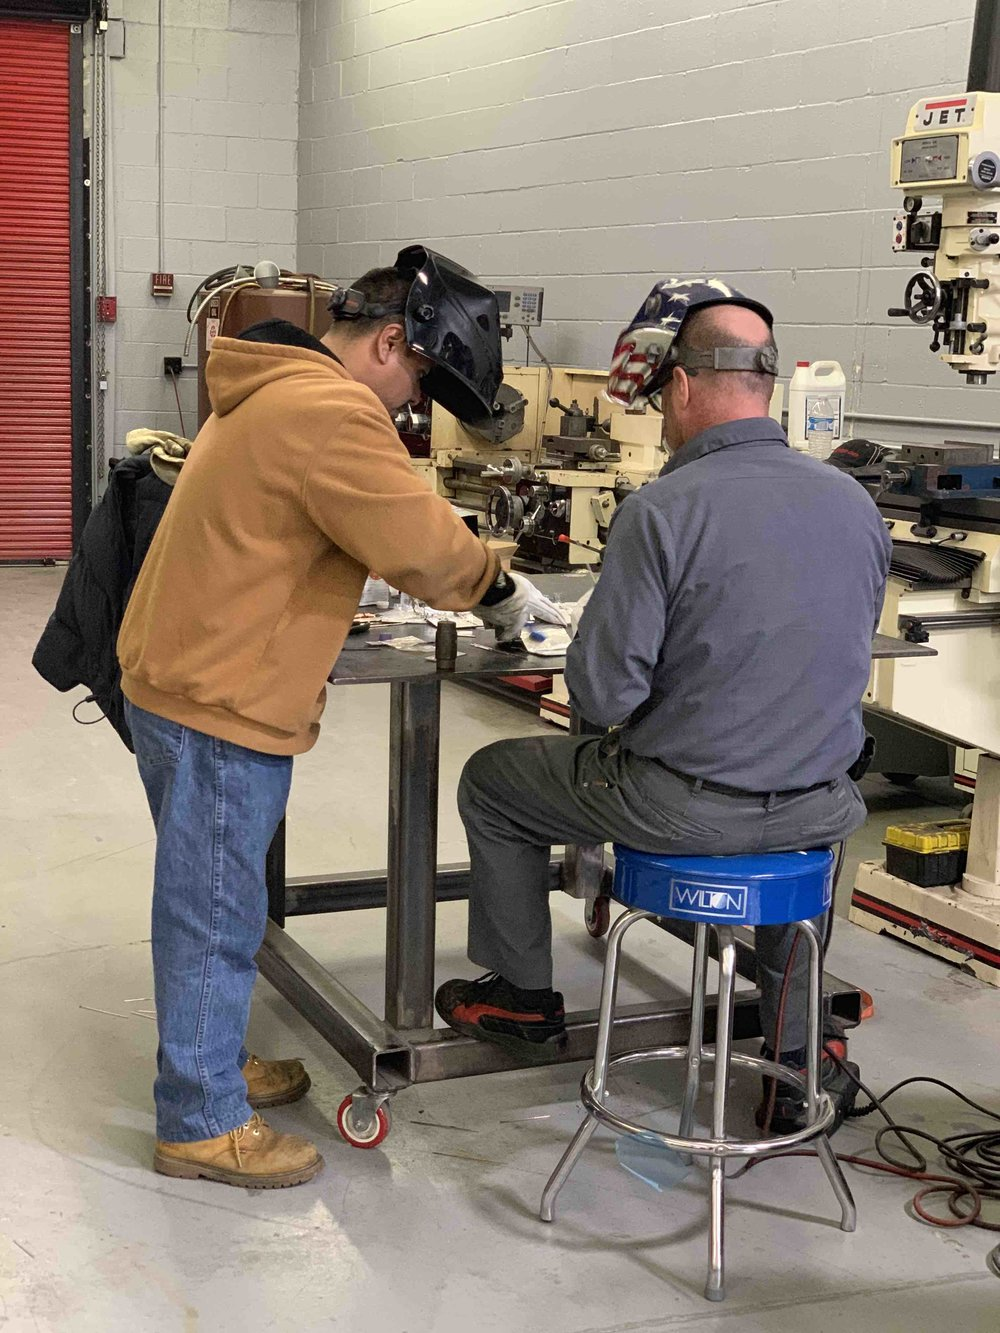 Fuller-Moto-Welding-Workshop-Jan2019-18.jpg